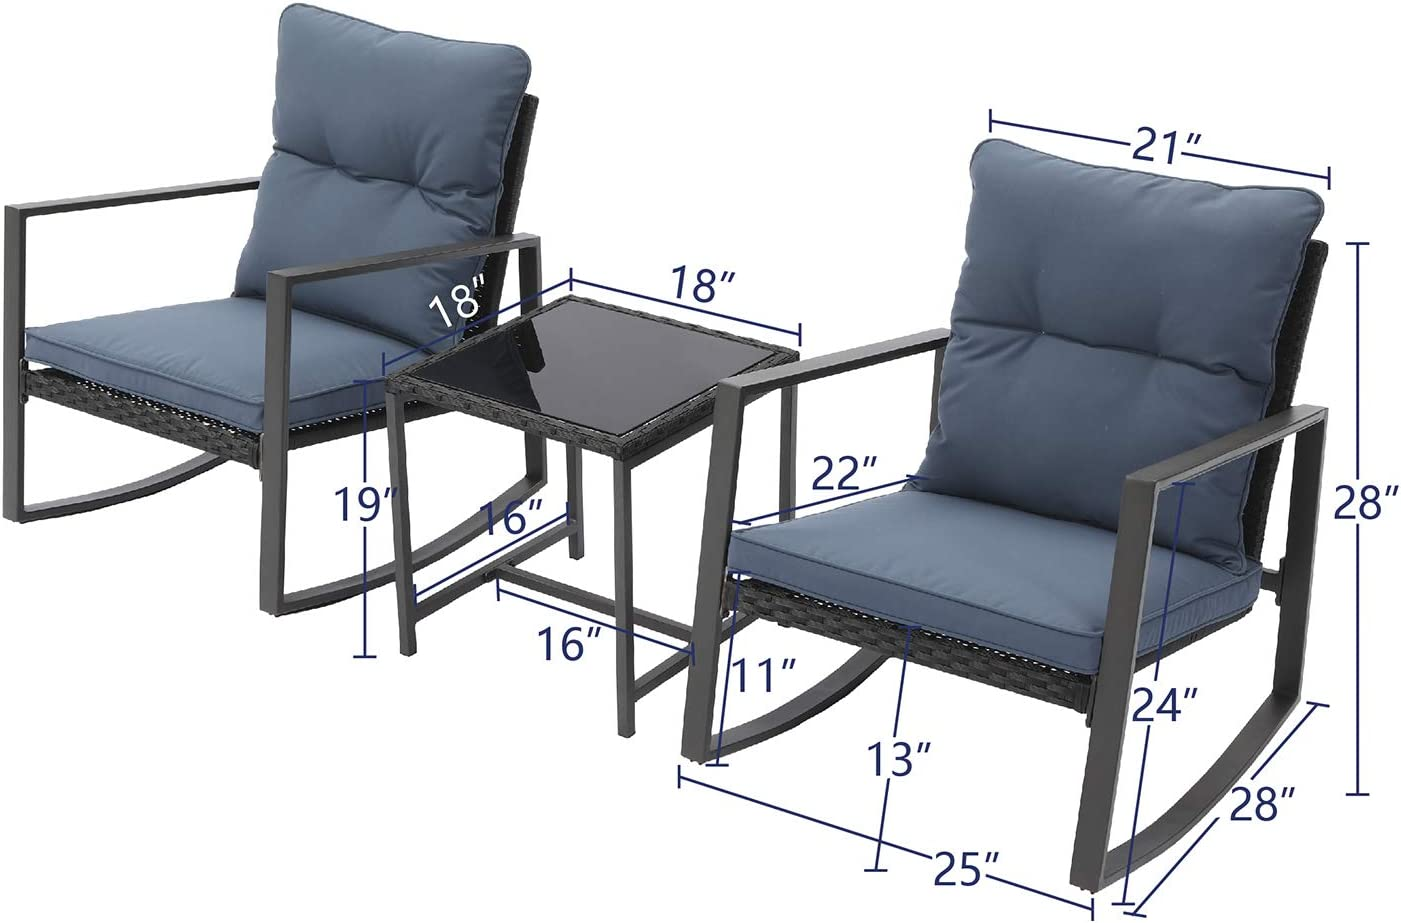 Tempered Glass Table Elegant Patio Bistro Chair for Backyard Outdoor Furniture 3-Piece Rocking Chair Set w Blue Cushion